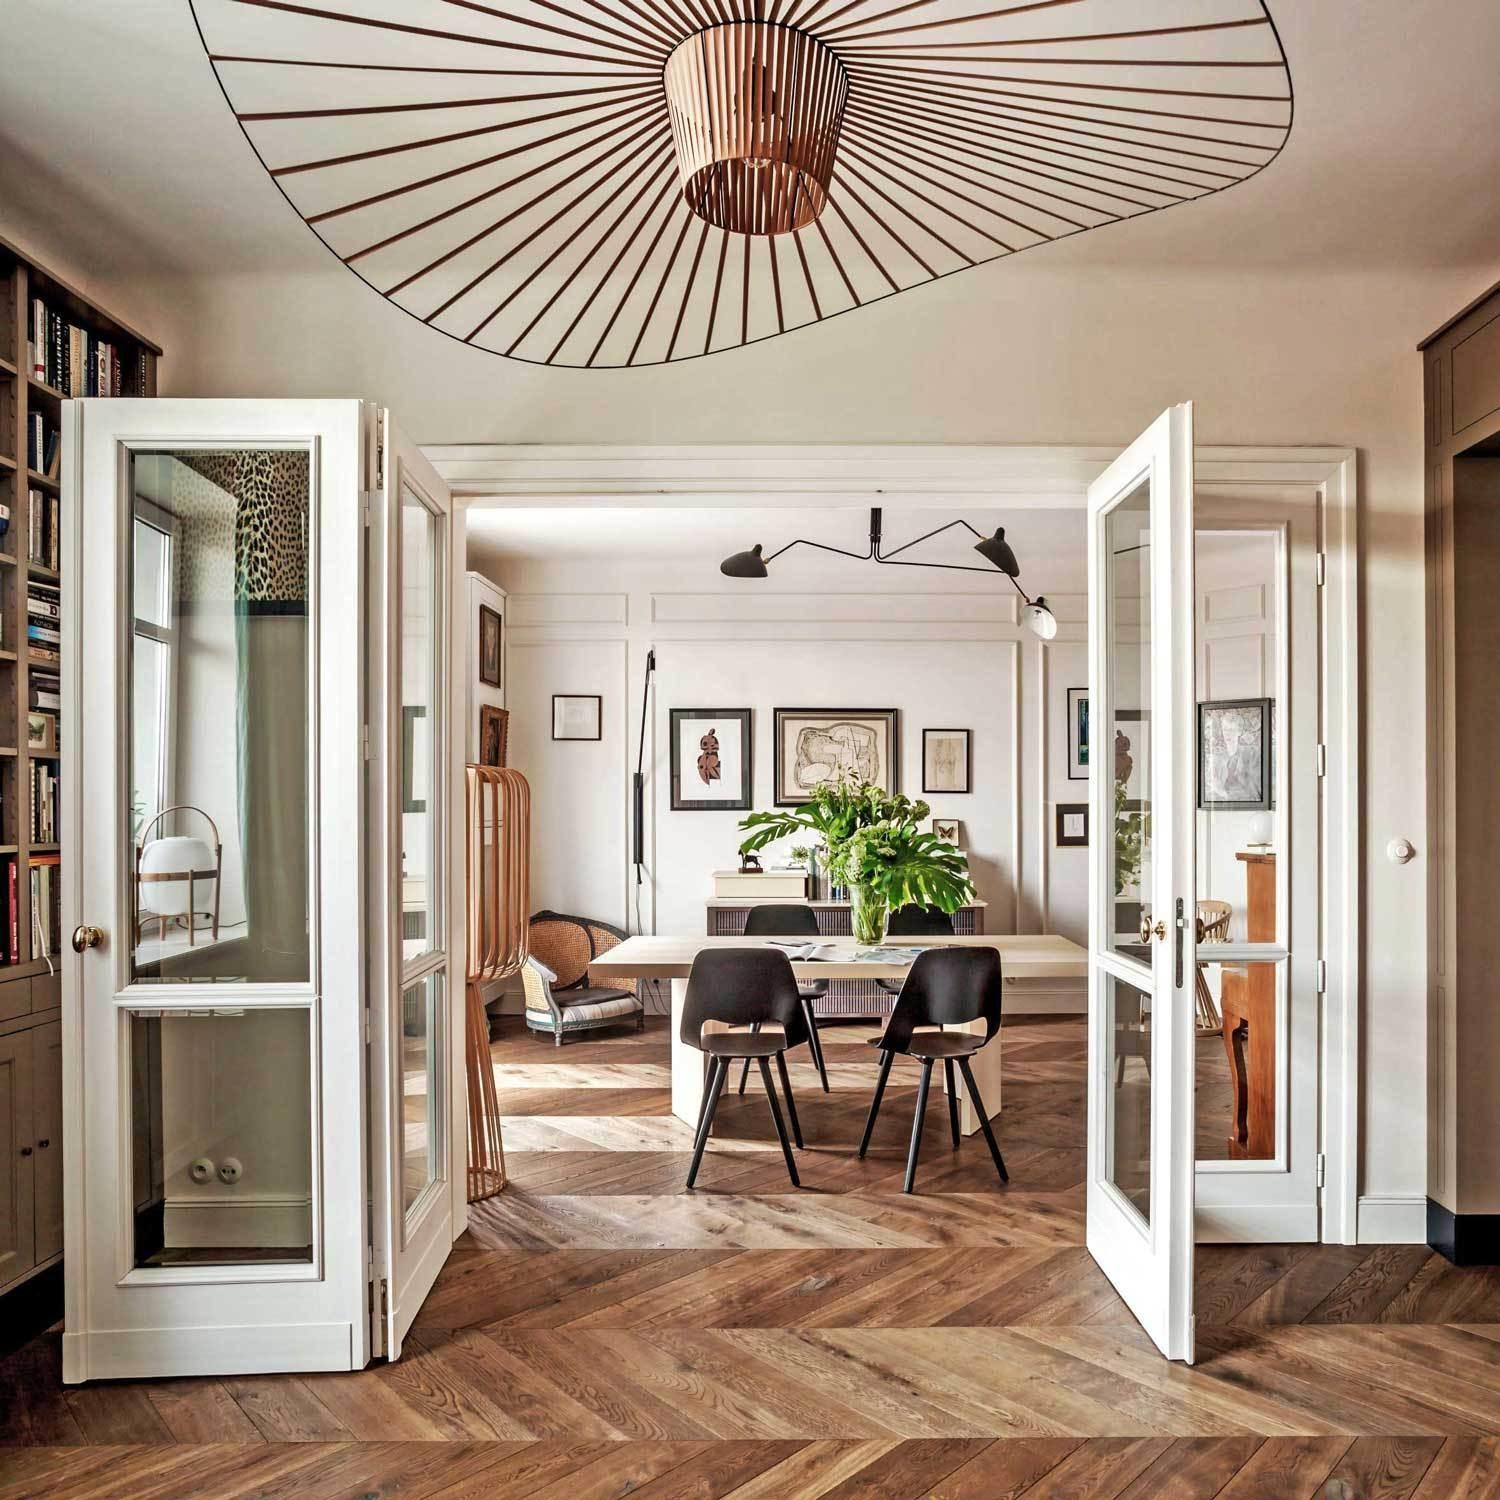 1930s Warsaw Apartment Renovation Colombe Design